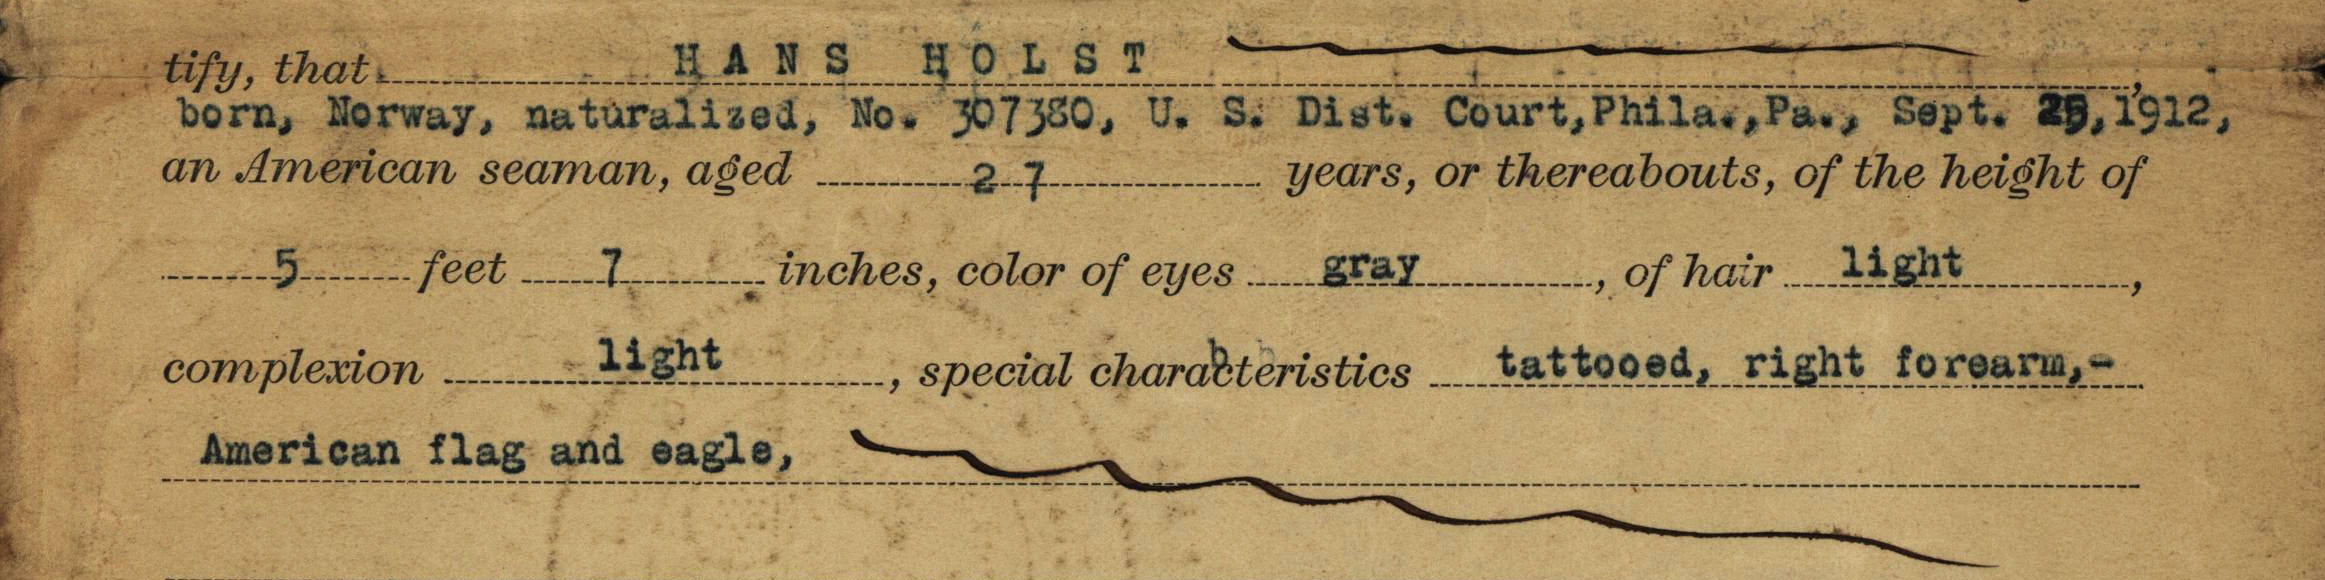 Hans Holst, seaman's certificate of American citizenship, detail two, 1917